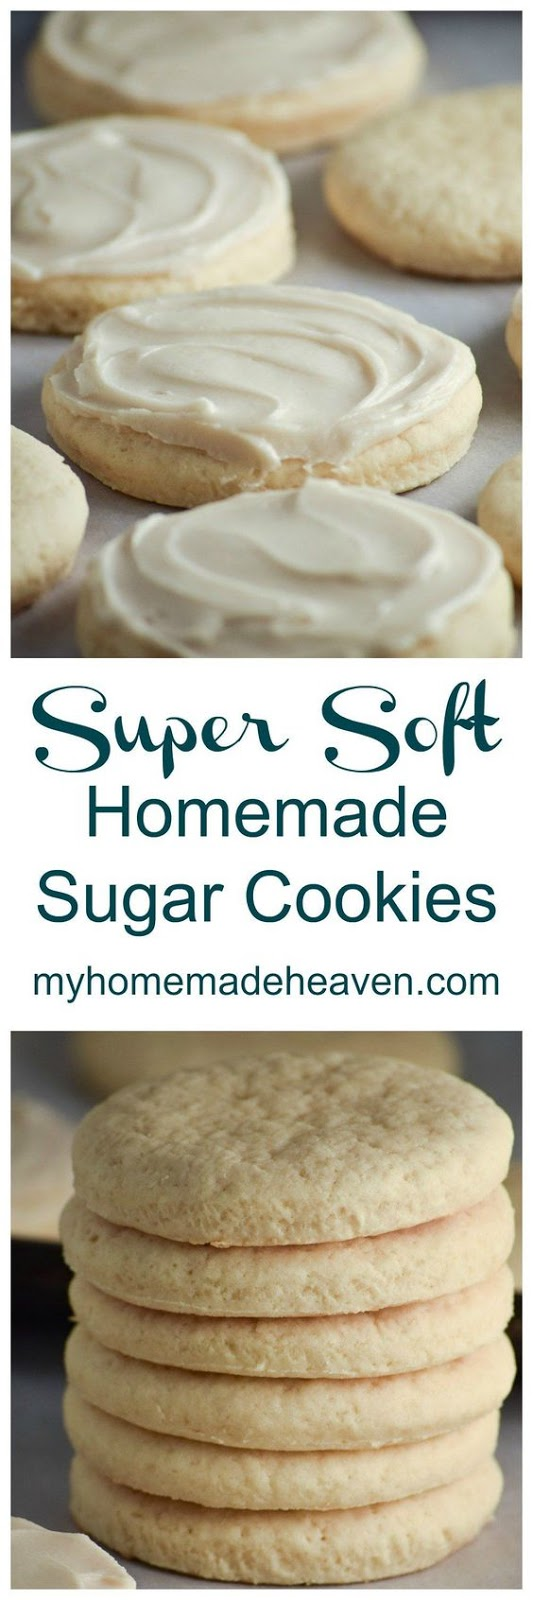 ★★★★☆ 7561 ratings | SUPER SOFT HOMEMADE SUGAR COOKIES  #HEALTHYFOOD #EASYRECIPES #DINNER #LAUCH #DELICIOUS #EASY #HOLIDAYS #RECIPE #desserts #specialdiet #worldcuisine #cake #appetizers #healthyrecipes #drinks #cookingmethod #italianrecipes #meat #veganrecipes #cookies #pasta #fruit #salad #soupappetizers #nonalcoholicdrinks #mealplanning #vegetables #soup #pastry #chocolate #dairy #alcoholicdrinks #bulgursalad #baking #snacks #beefrecipes #meatappetizers #mexicanrecipes #bread #asianrecipes #seafoodappetizers #muffins #breakfastandbrunch #condiments #cupcakes #cheese #chickenrecipes #pie #coffee #nobakedesserts #healthysnacks #seafood #grain #lunchesdinners #mexican #quickbread #liquor